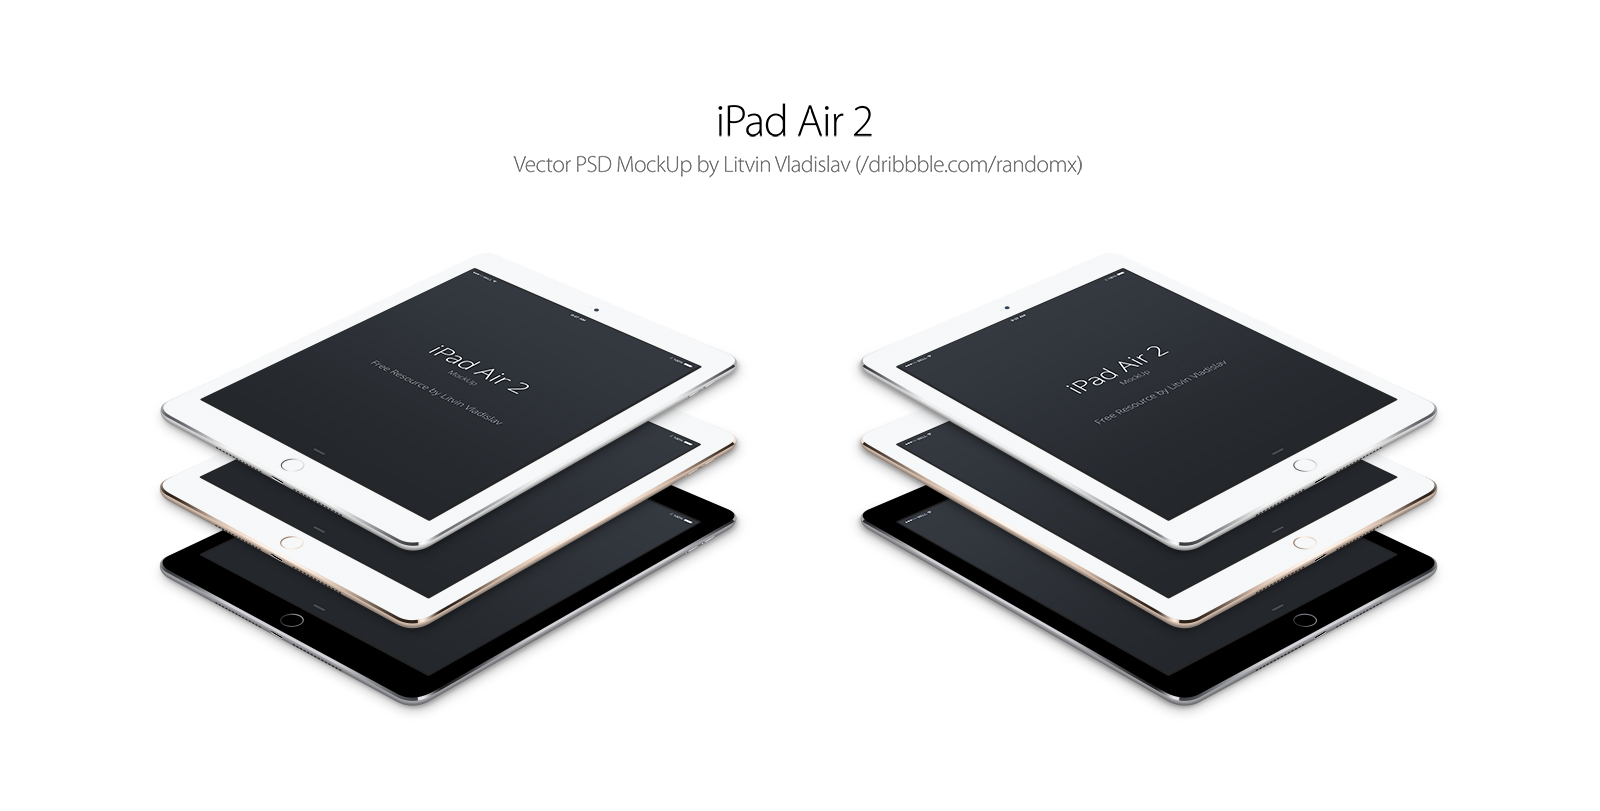 iPad Air 2 Perspective Mockup